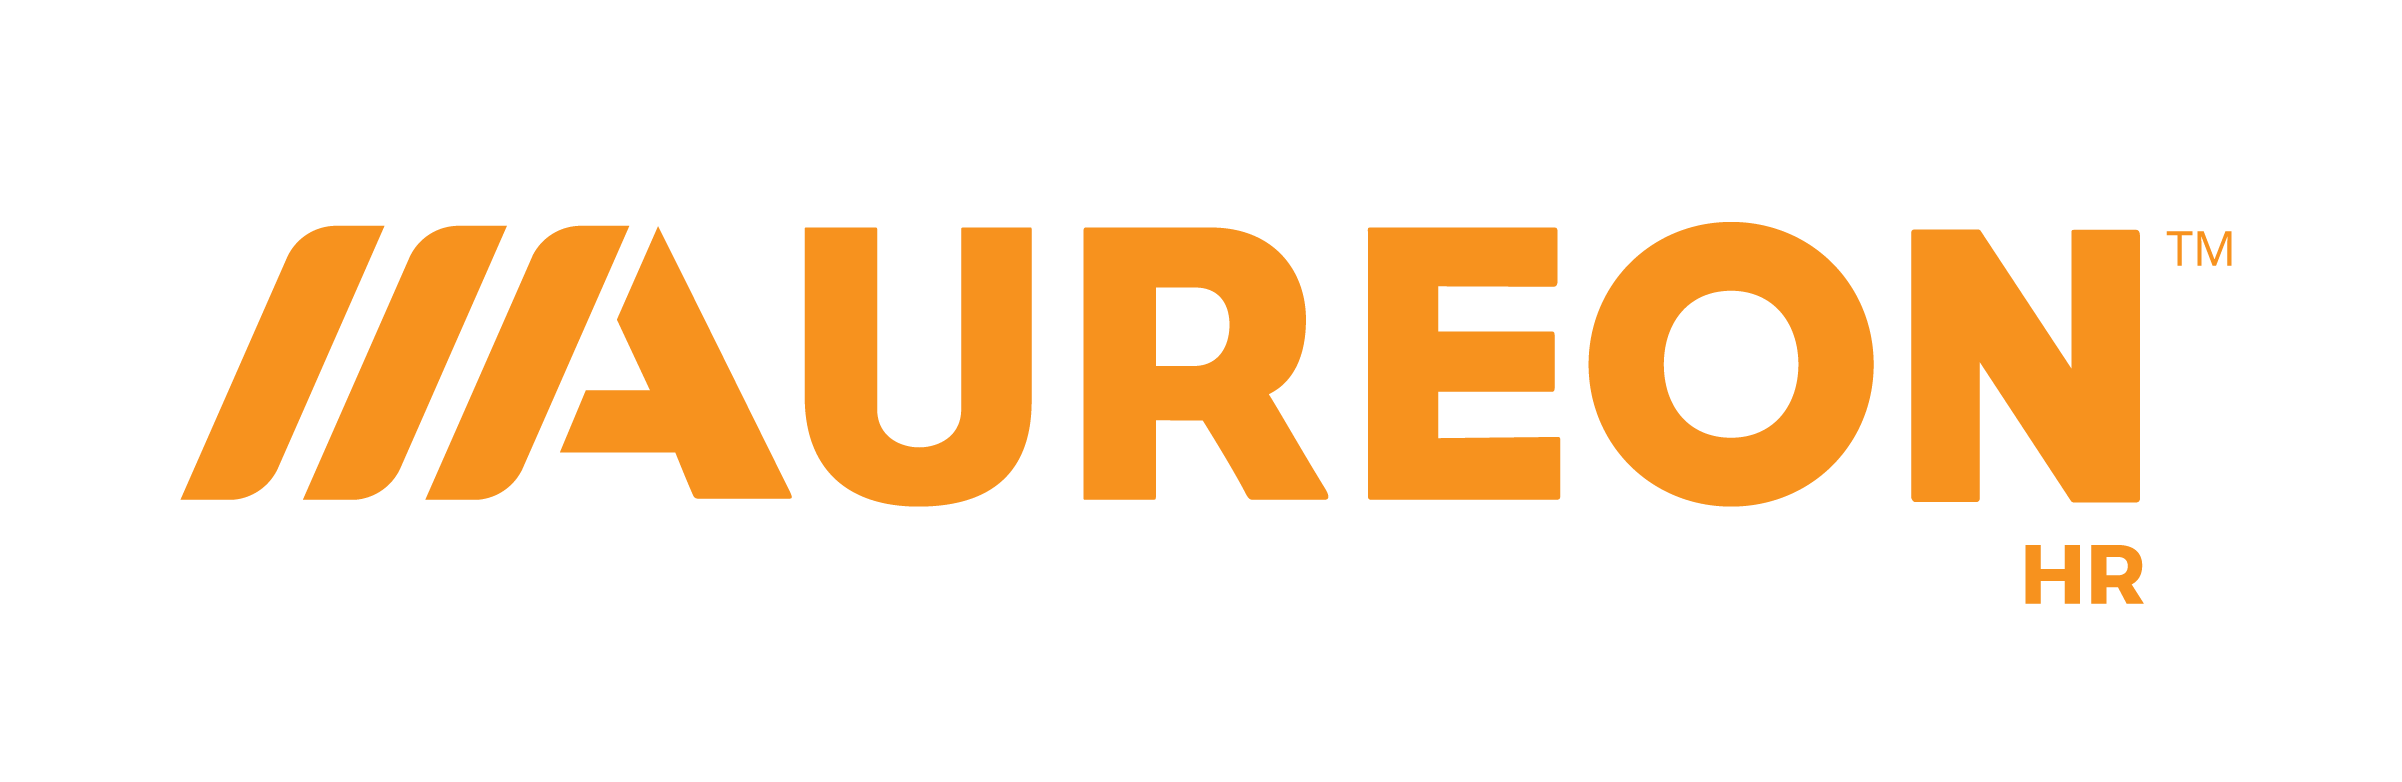 Watch the job video below to learn more about the career opening Administrative Assistant at Aureon HR in Des Moines,   Iowa